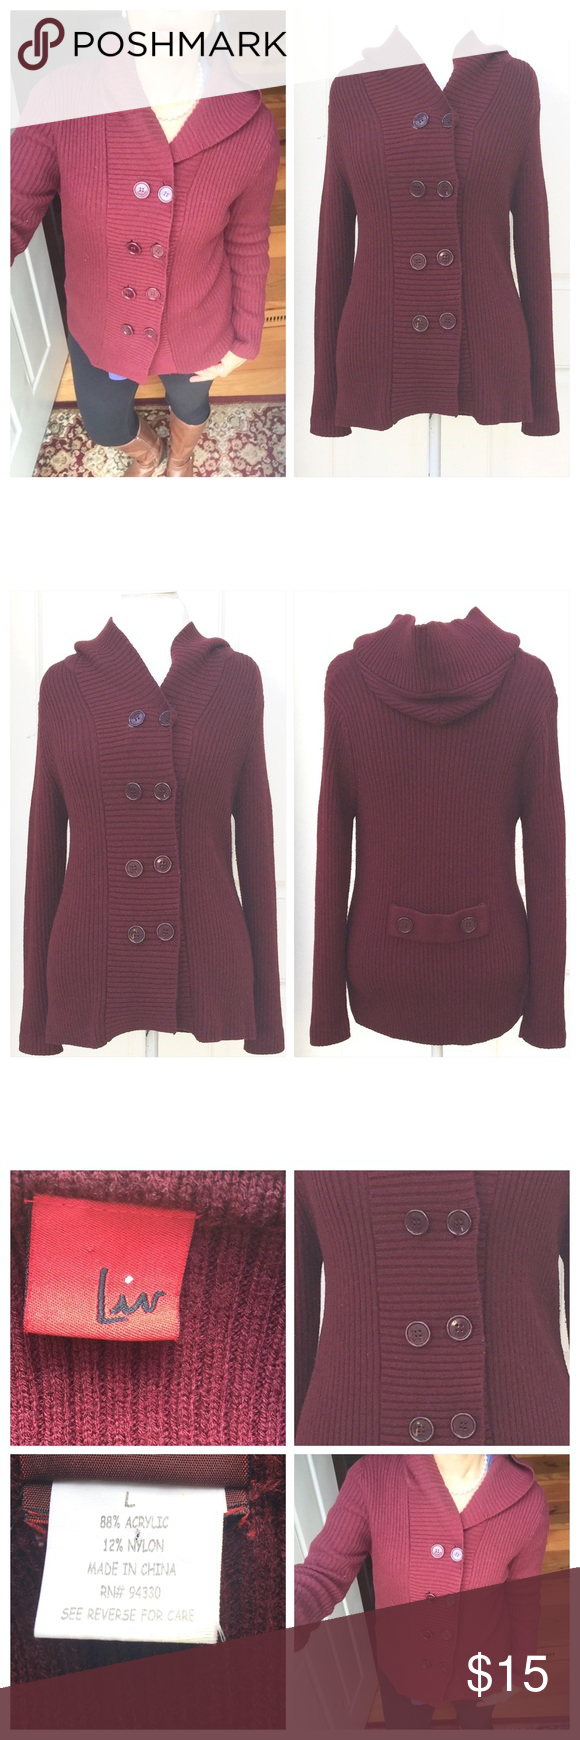 Burgundy Button Up Hooded Sweater Boutique size large burgundy ...